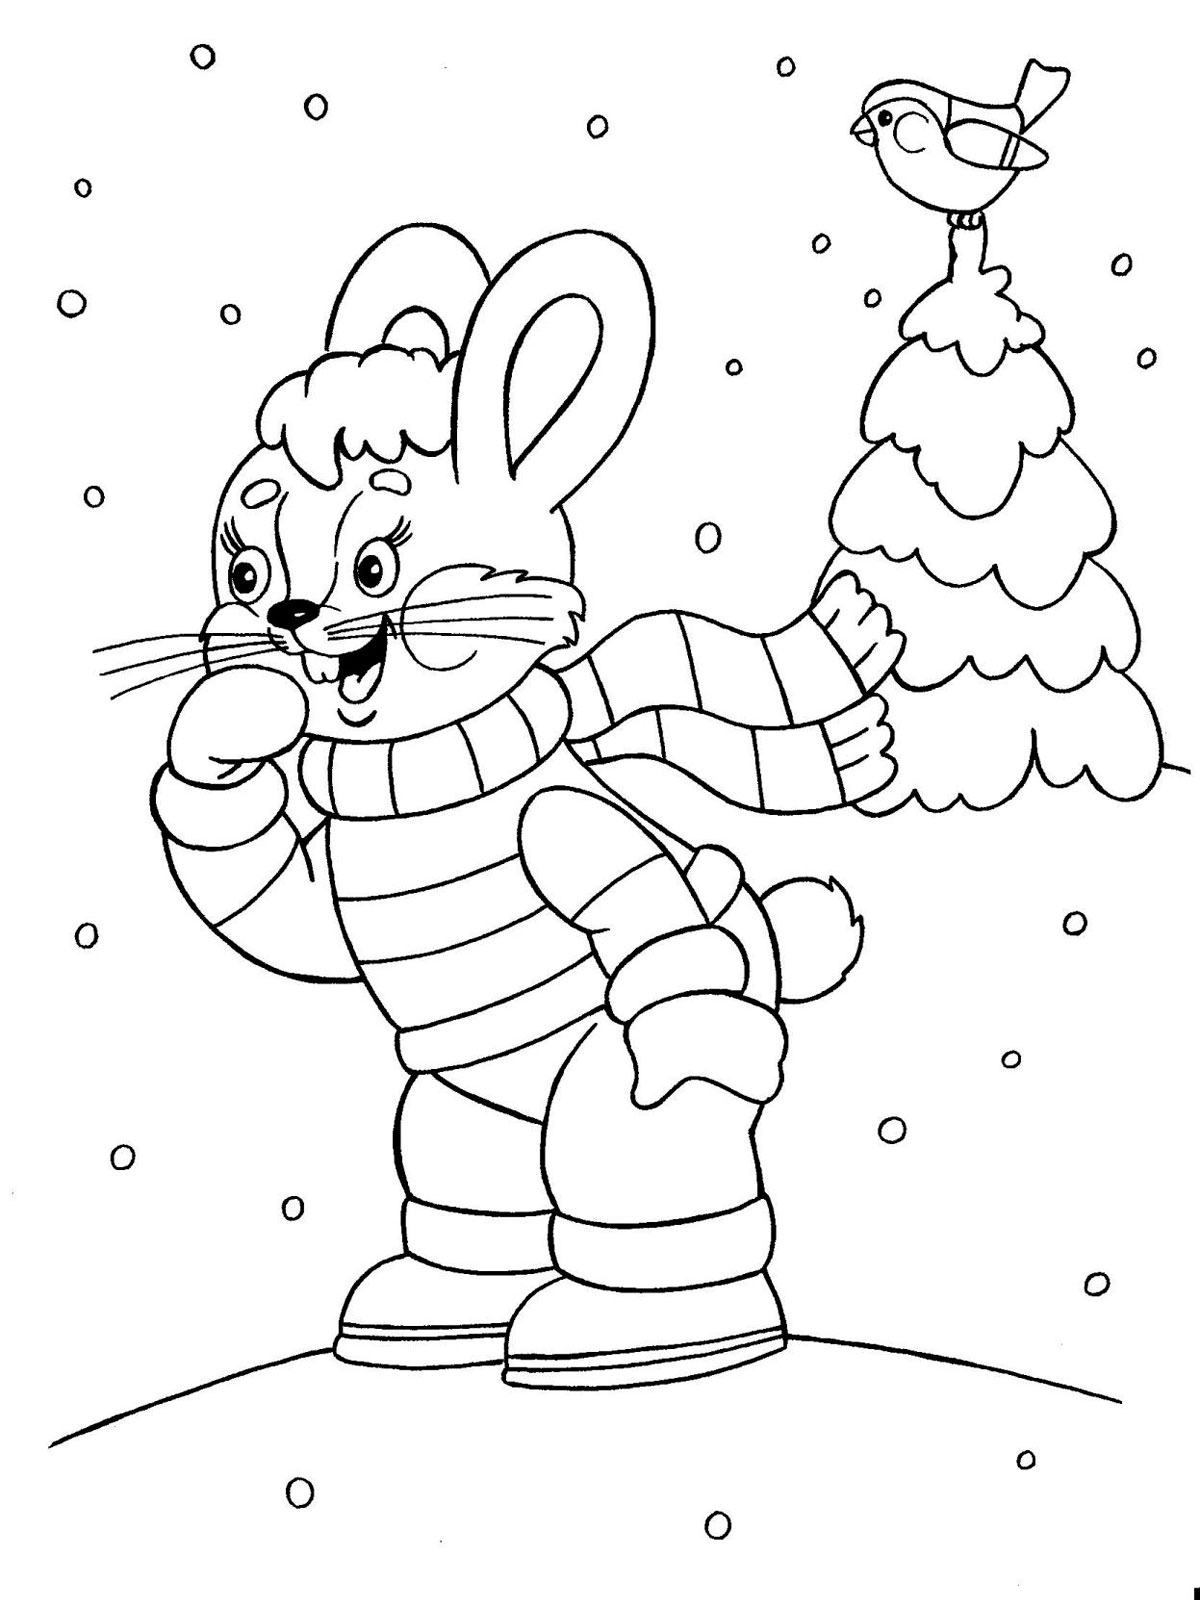 Pe Lanzape Lanza Colouring Pages Pe Coloring Pages